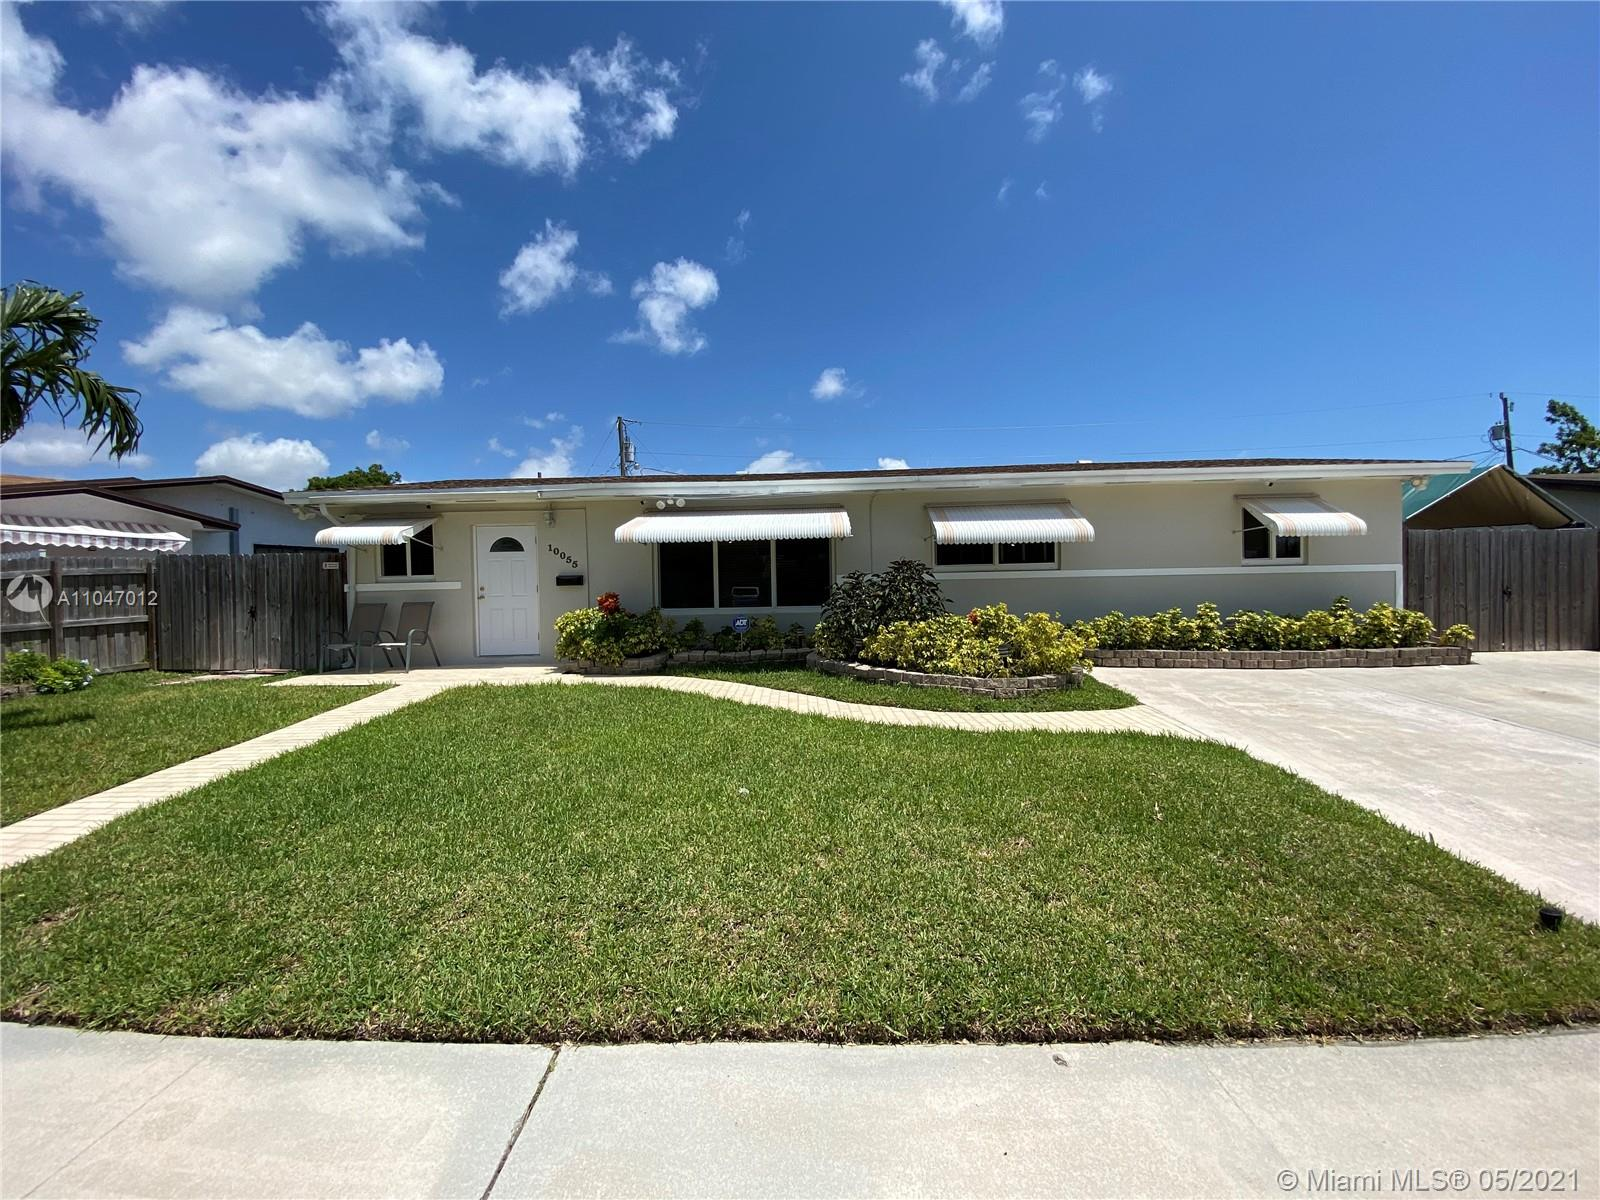 Charming 4-bedroom, 2-bathroom, single family home in Cutler Bay. Home features a brand-new roof, hurricane impact windows, fresh exterior paint, Stainless-steel appliances, laminate floors in 3 bedrooms and kitchen, all major AC unit components have recently been replaced, alarm system w/ cameras, extra-large storage/laundry room plus 2 shed houses. Large fully fenced back yard w/ a covered porch and screened in pool is perfect for entertaining! Plenty of space on the side to park your boat or an RV. This home is conveniently located a short distance from Old Cutler Rd., US-1, turnpike, Black point marina, shopping and dining. No association. A must see, wont last! Must email the DU before showing.